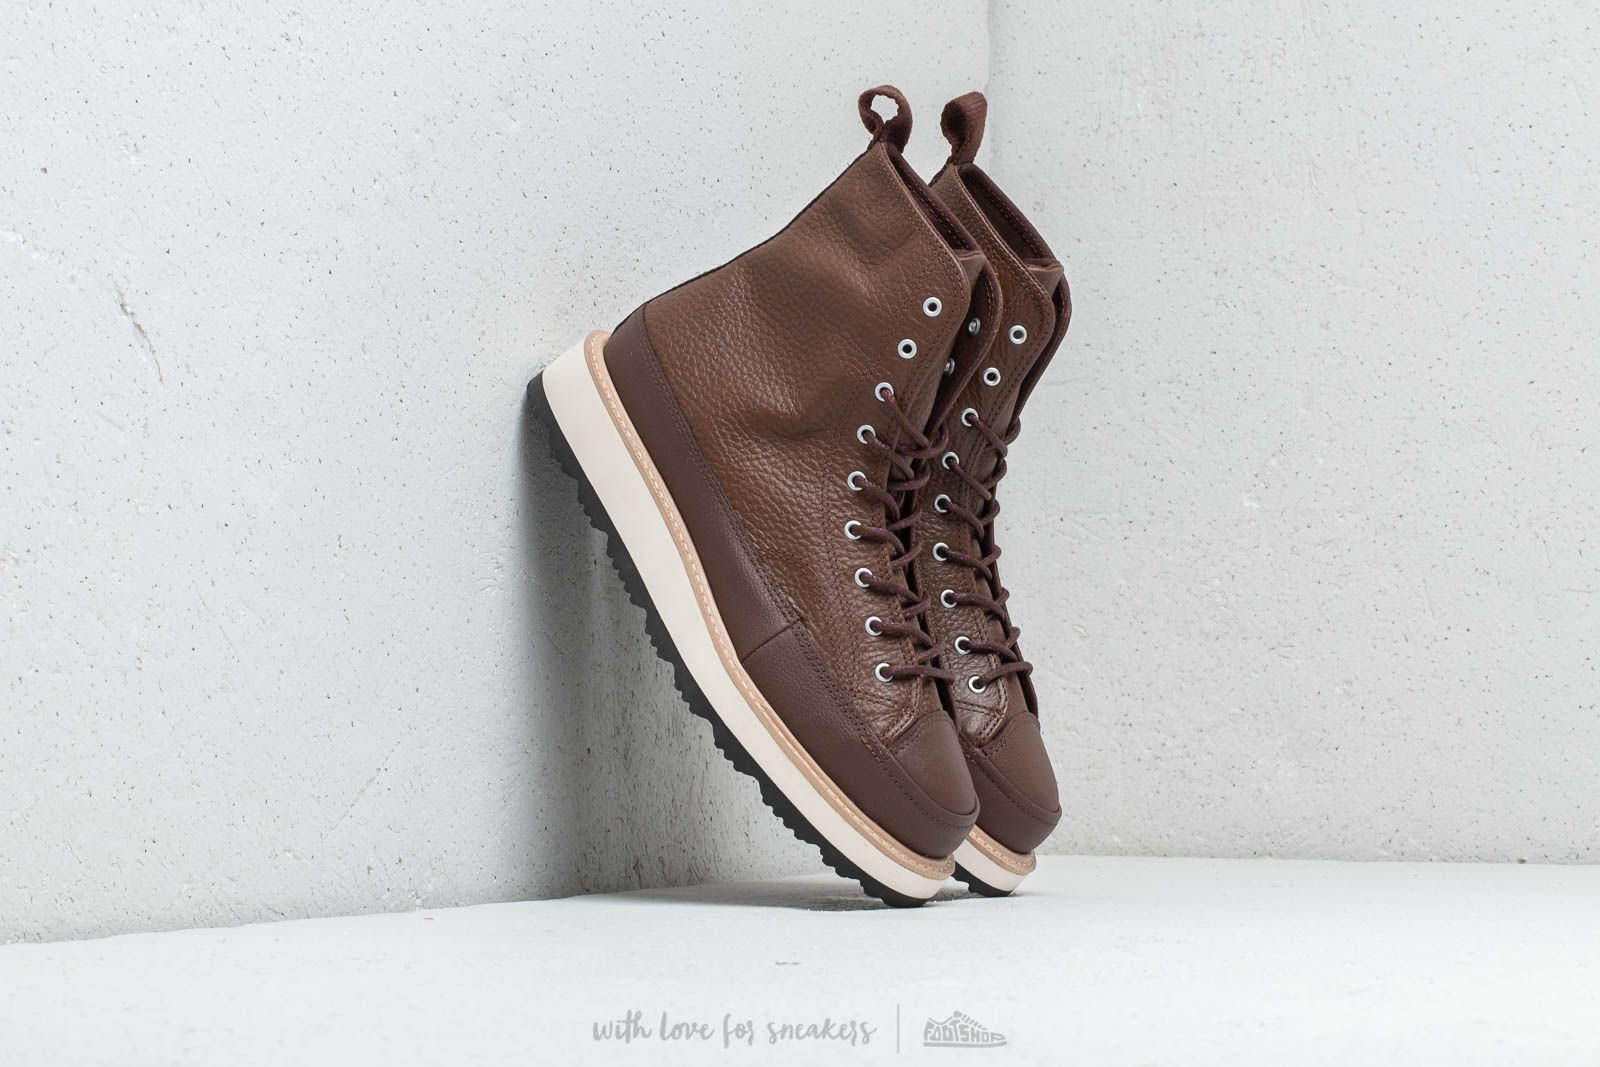 fae6dd3a3d3f Converse Chuck Taylor All Stars Crafted Boot High Chocolate  Light Fawn   Black at a